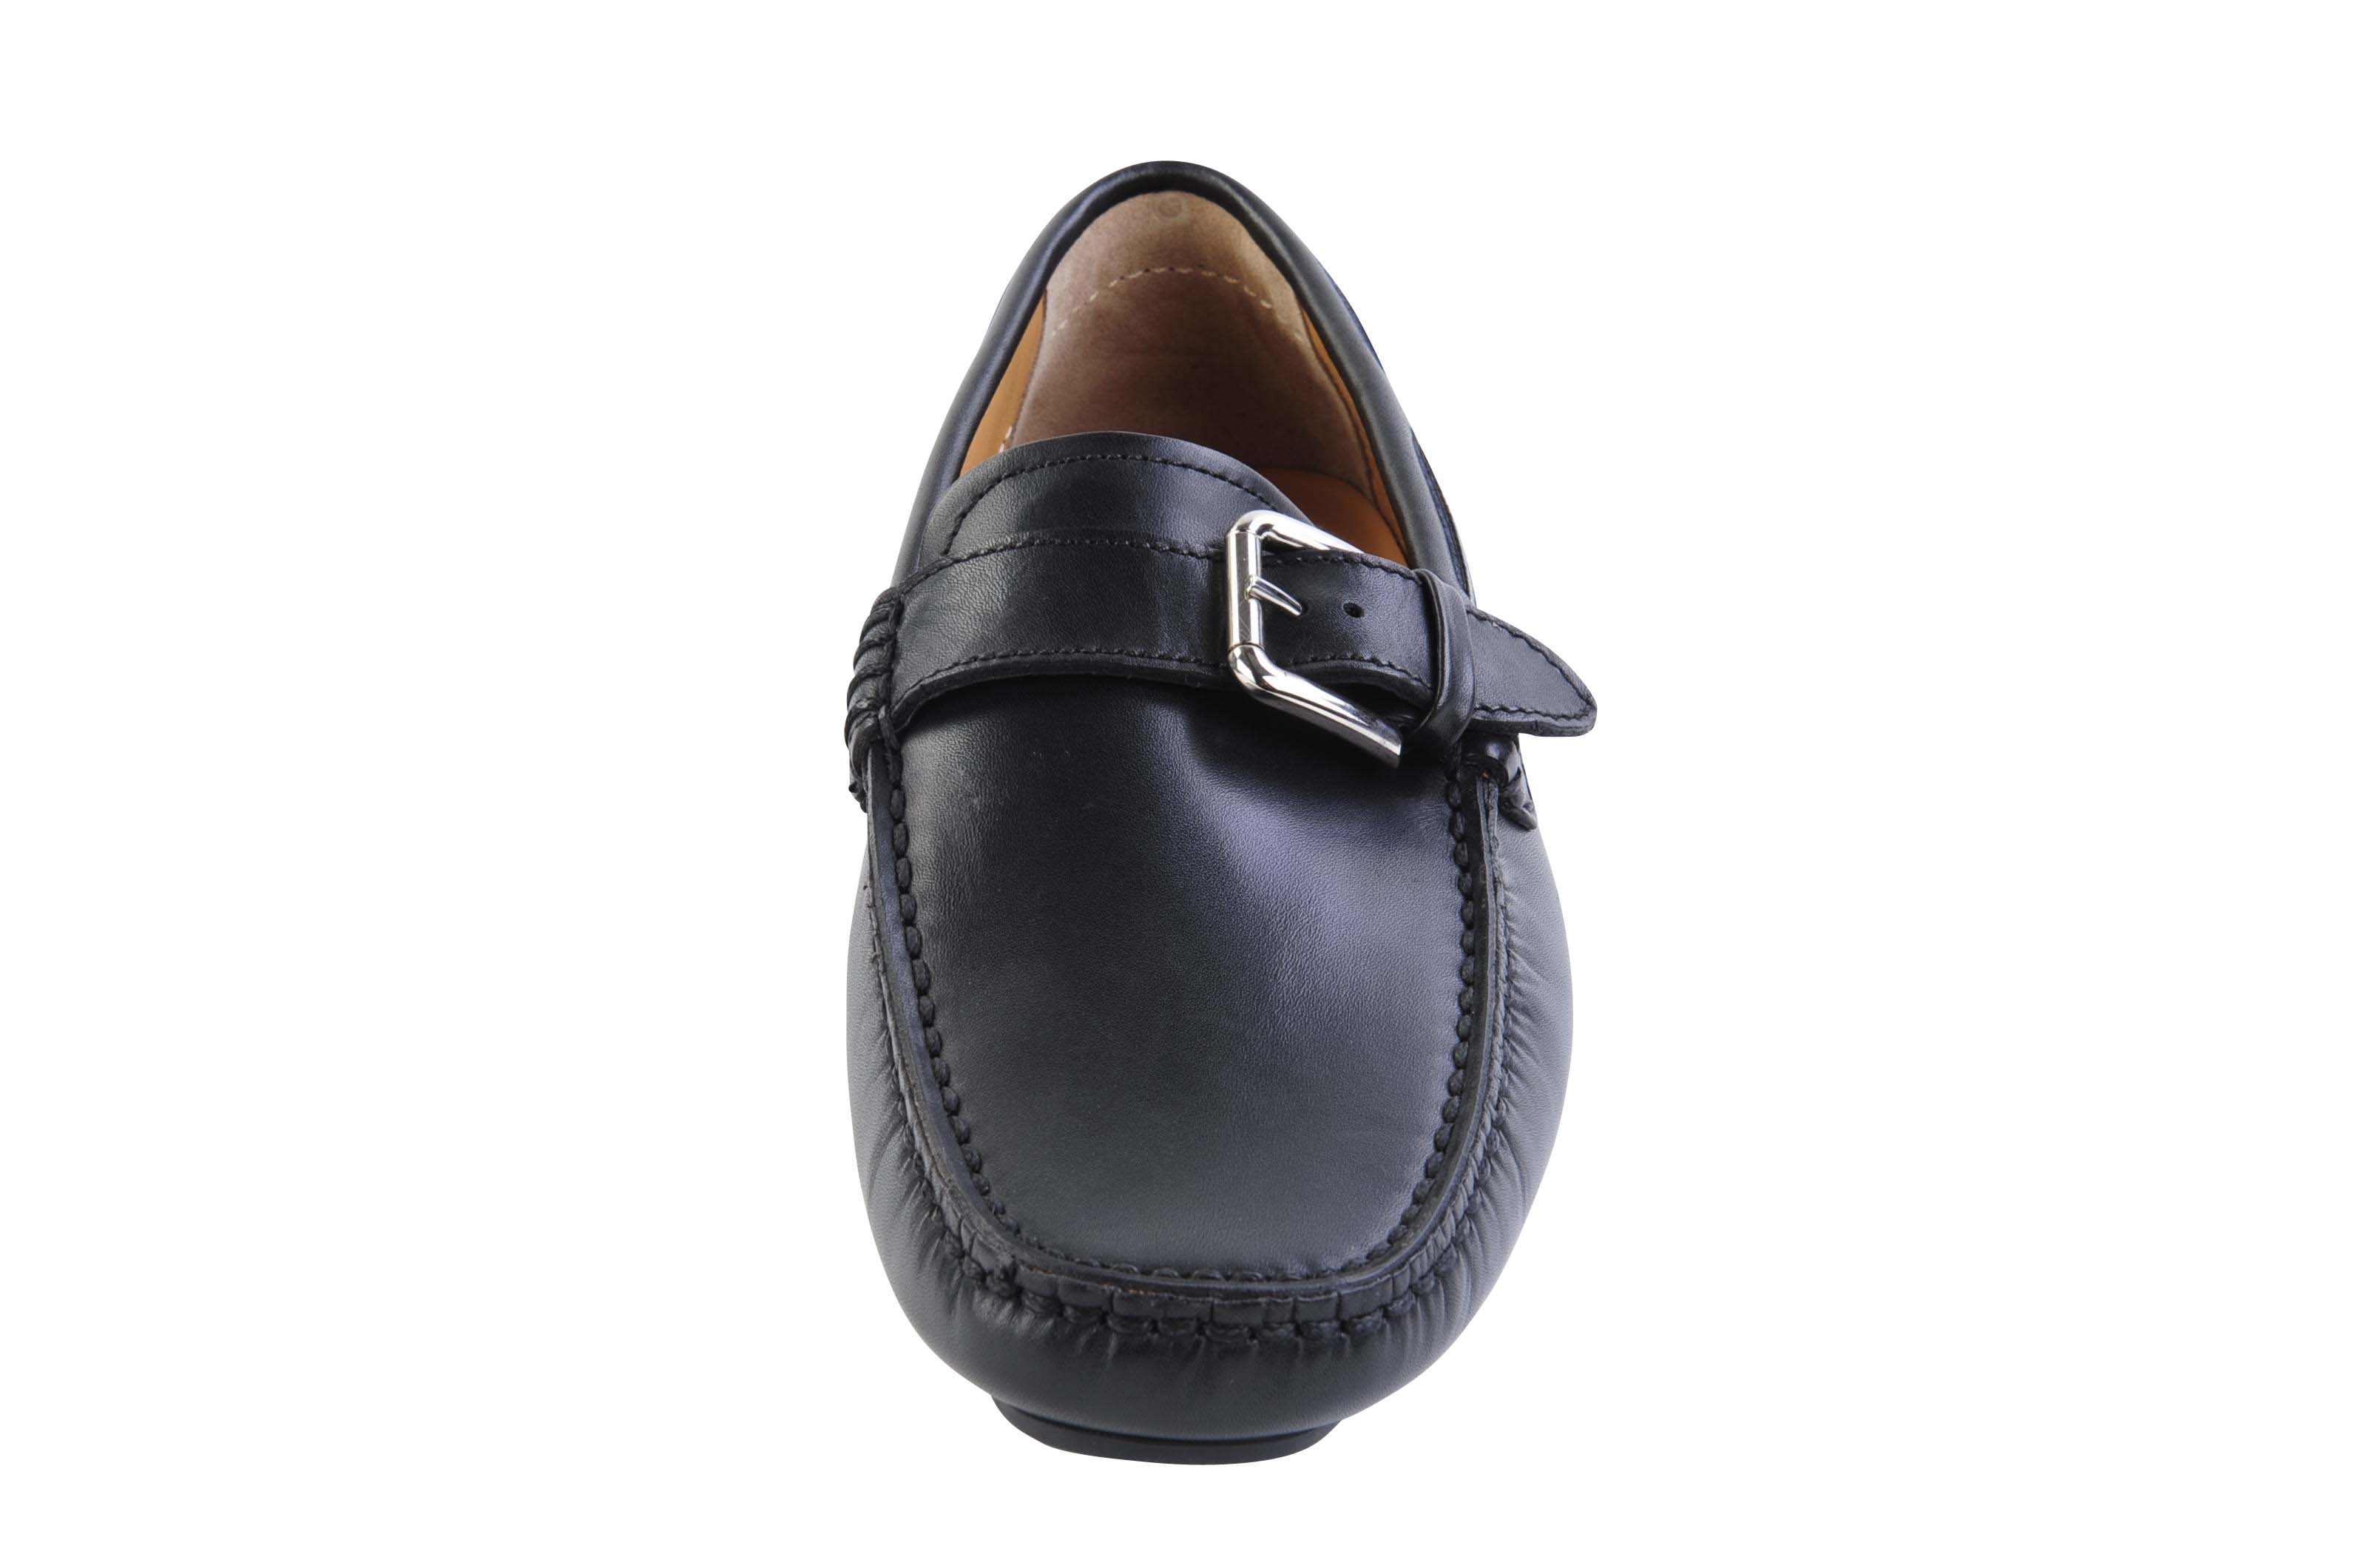 bally switzerland chaussures homme driver moccasins cuir souple 38 low top no. Black Bedroom Furniture Sets. Home Design Ideas